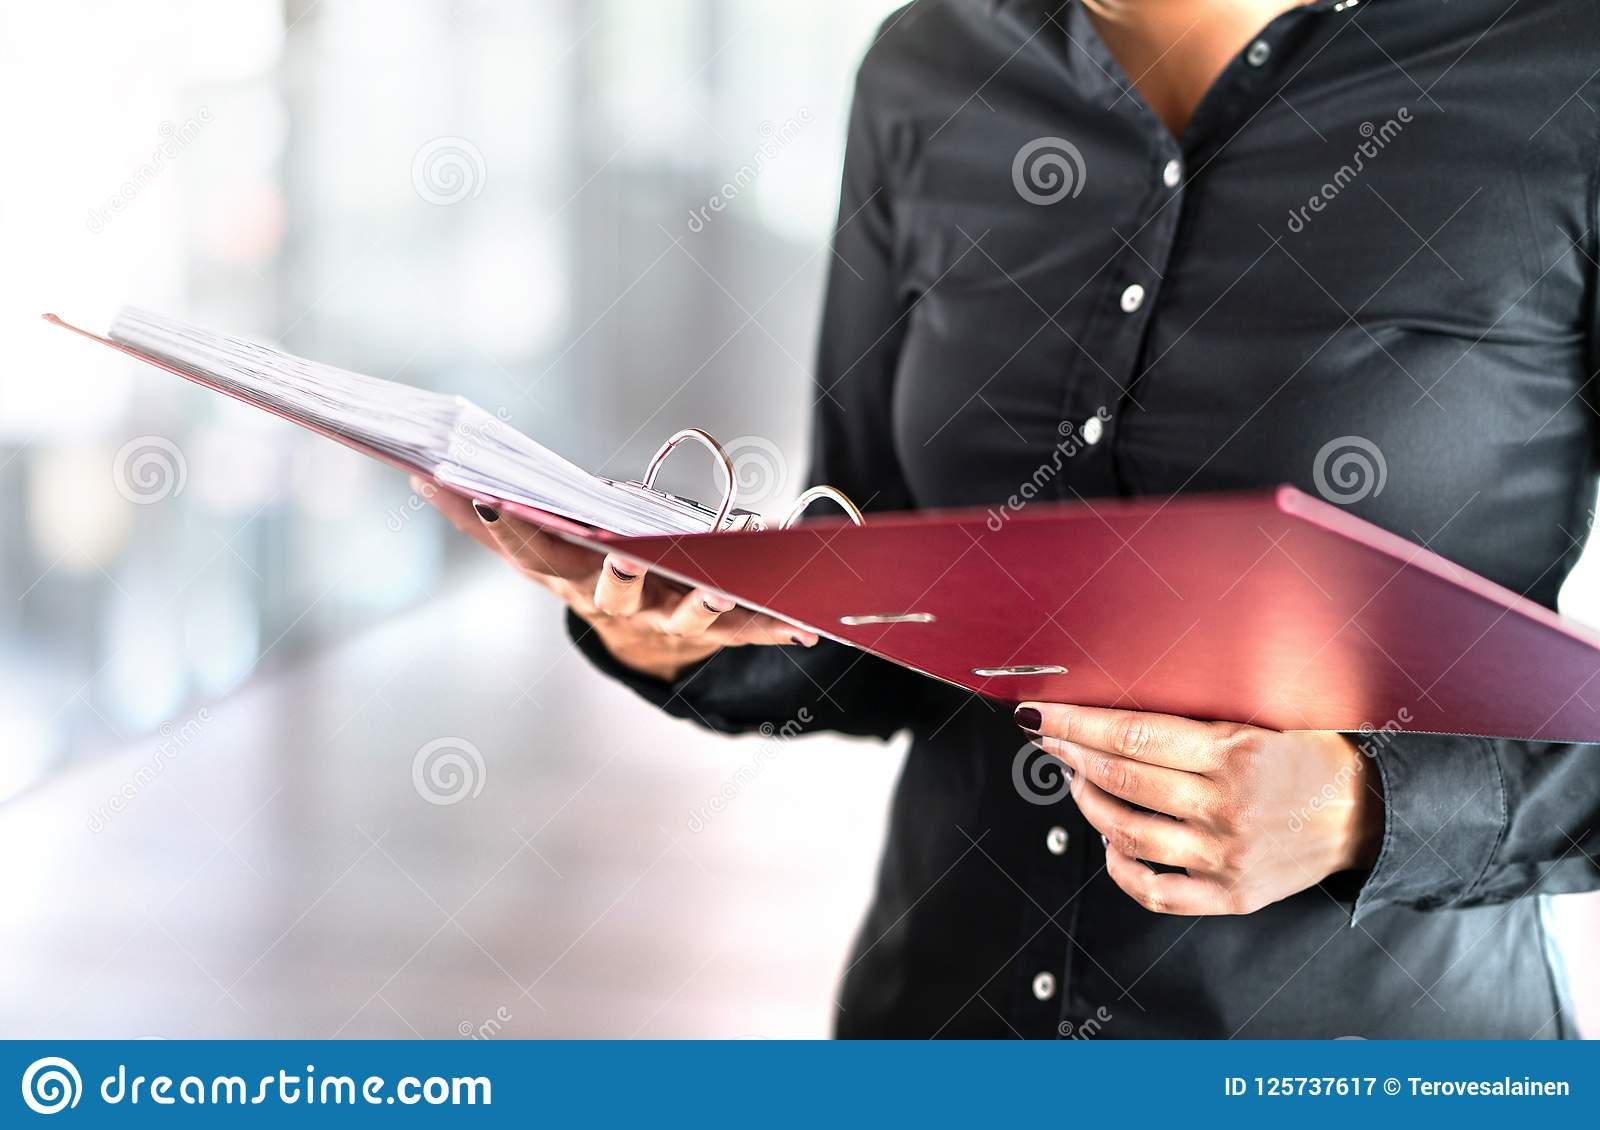 Female social worker, detective or business woman reading files.